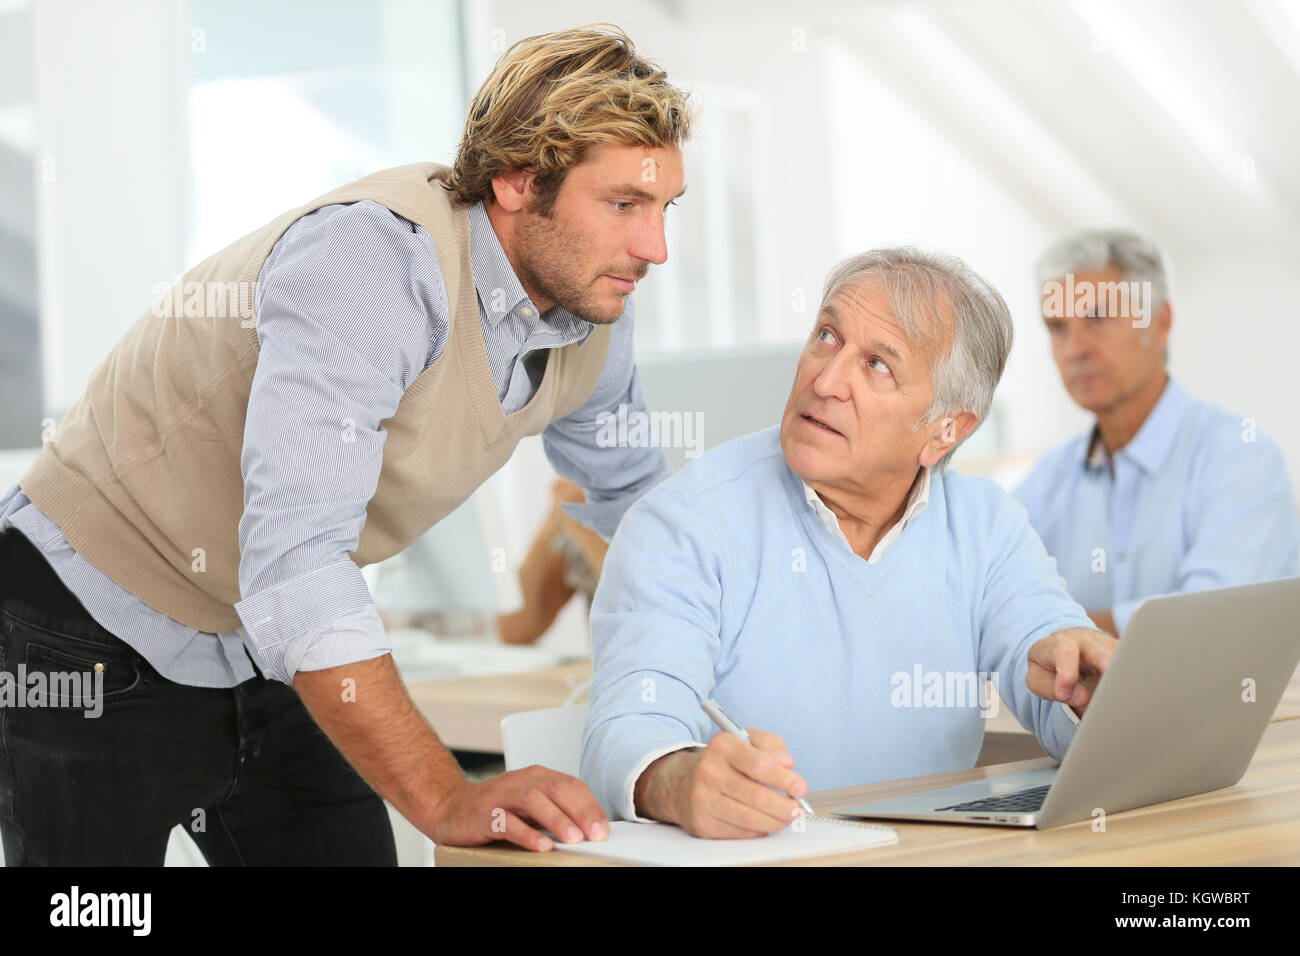 Senior man attending business class with trainer - Stock Image